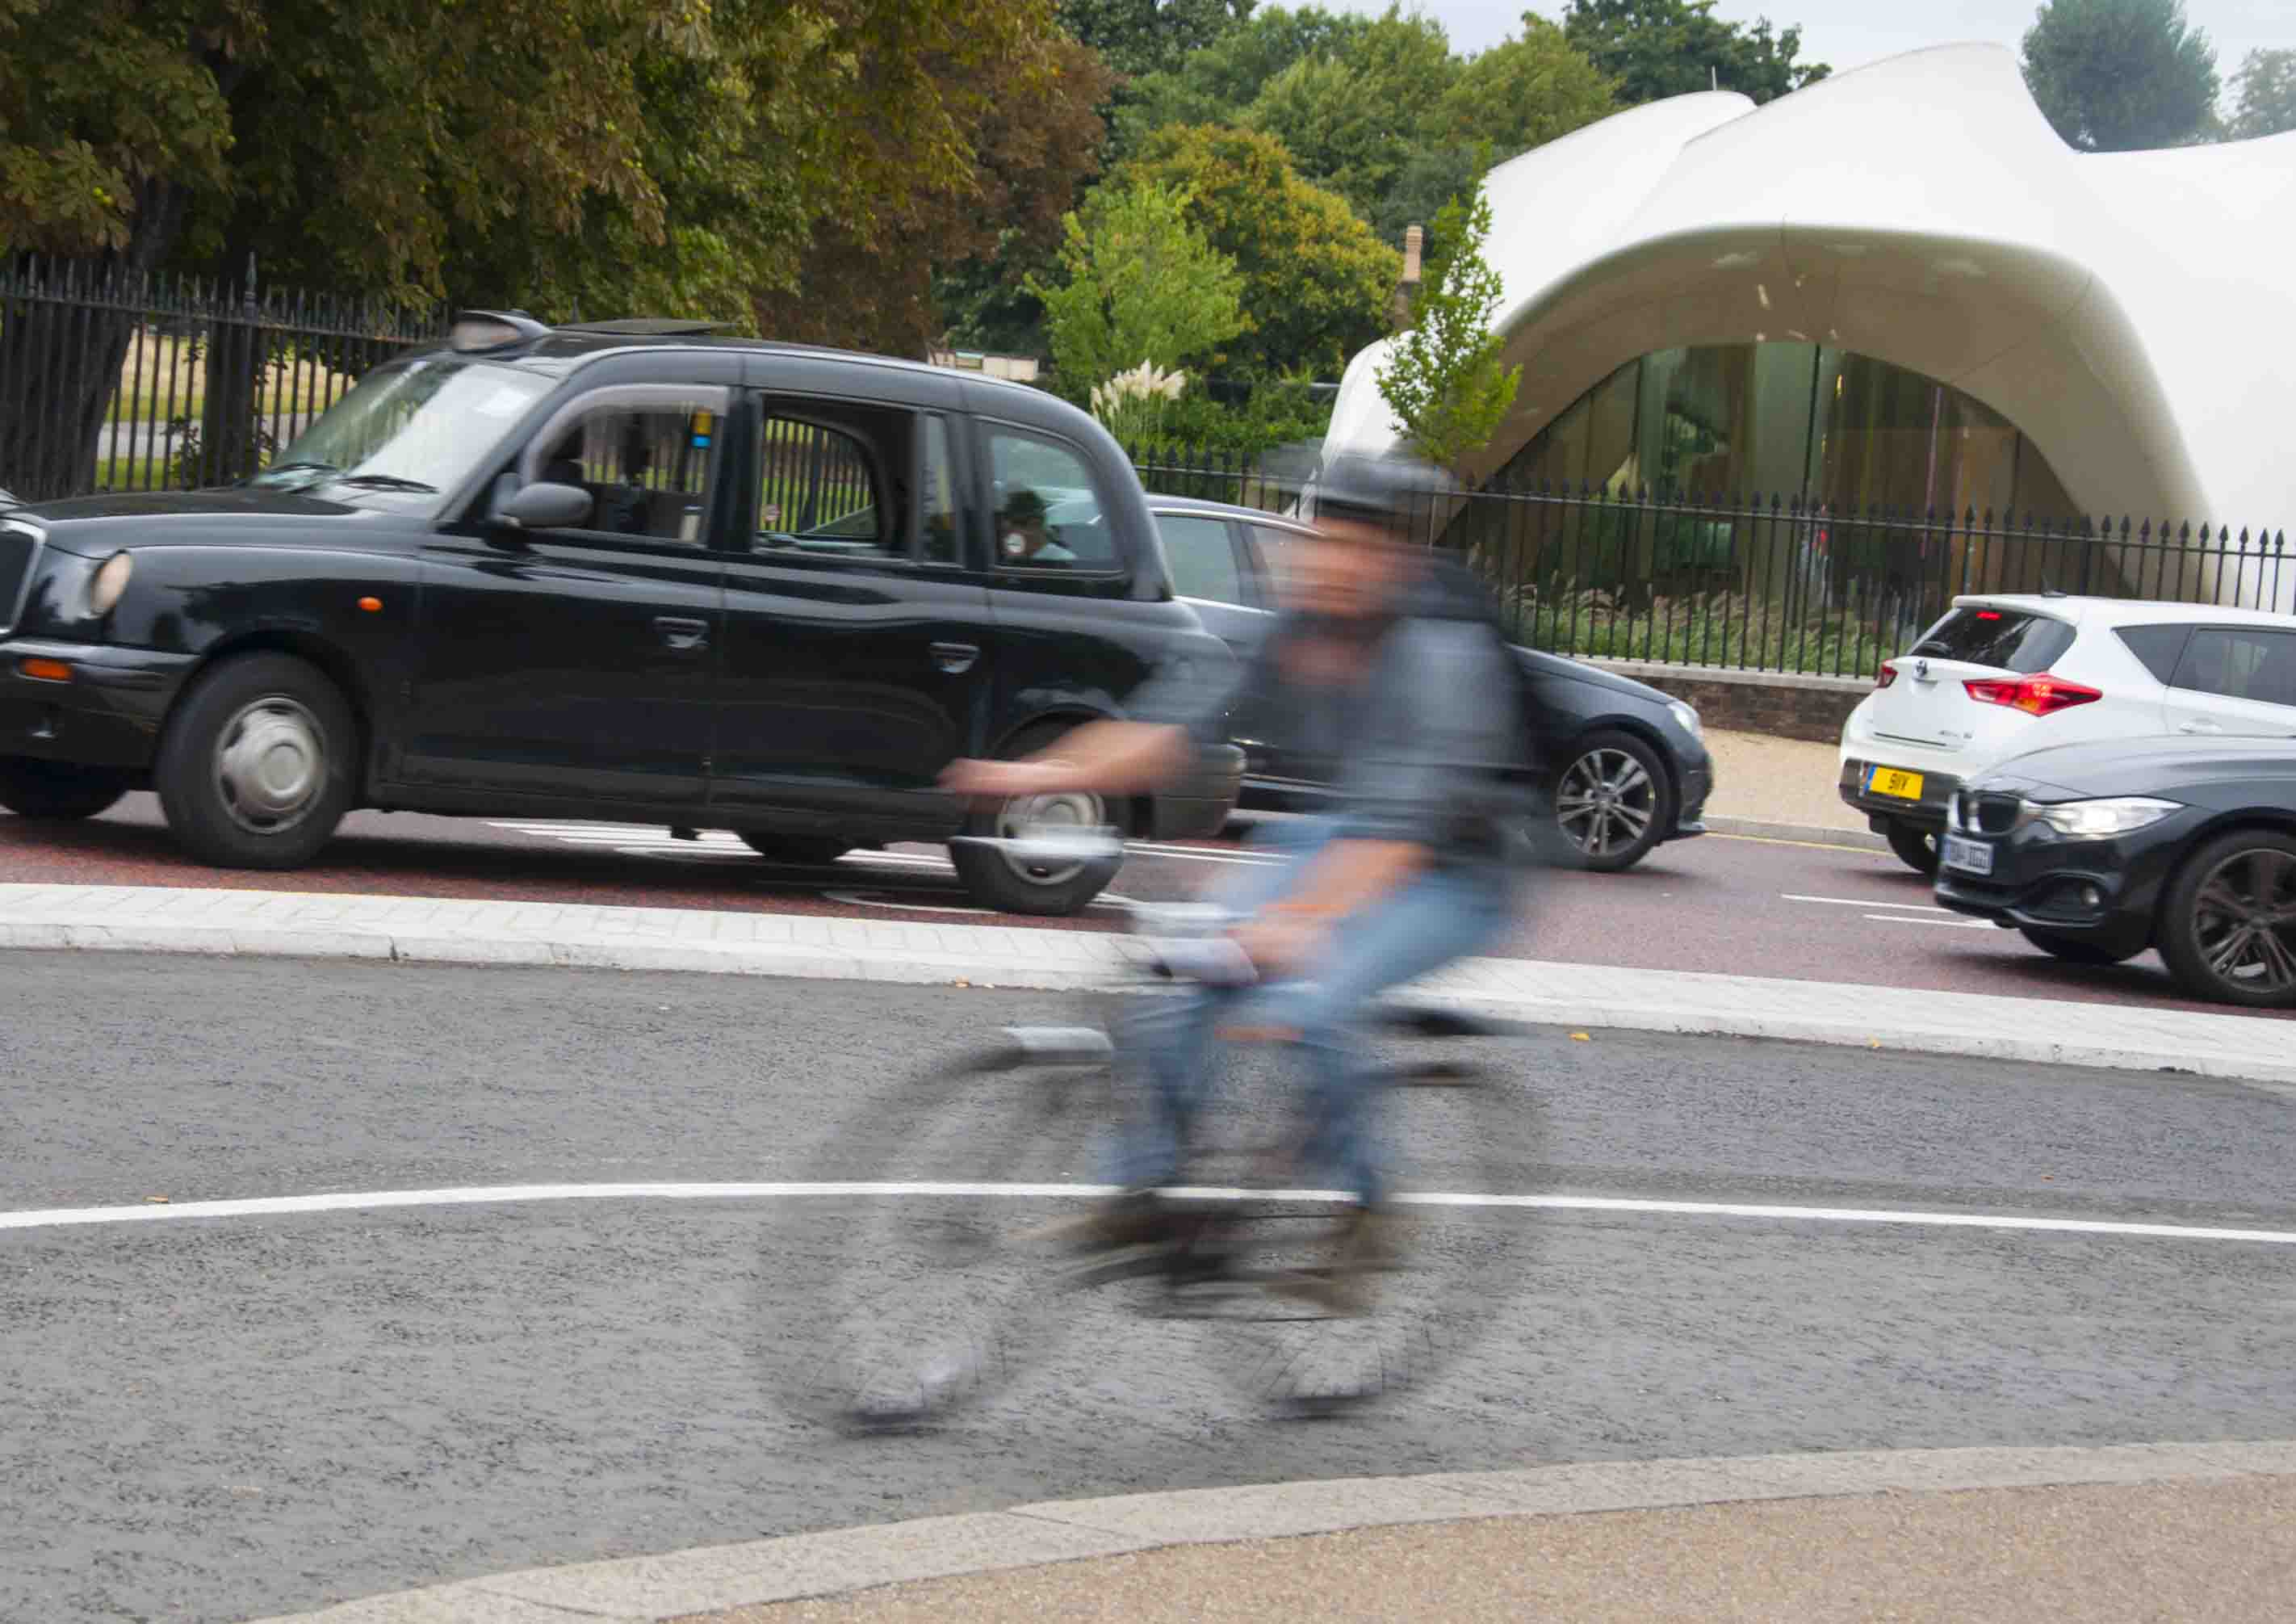 A Ride Along The Hyde Park Cycle Superhighway